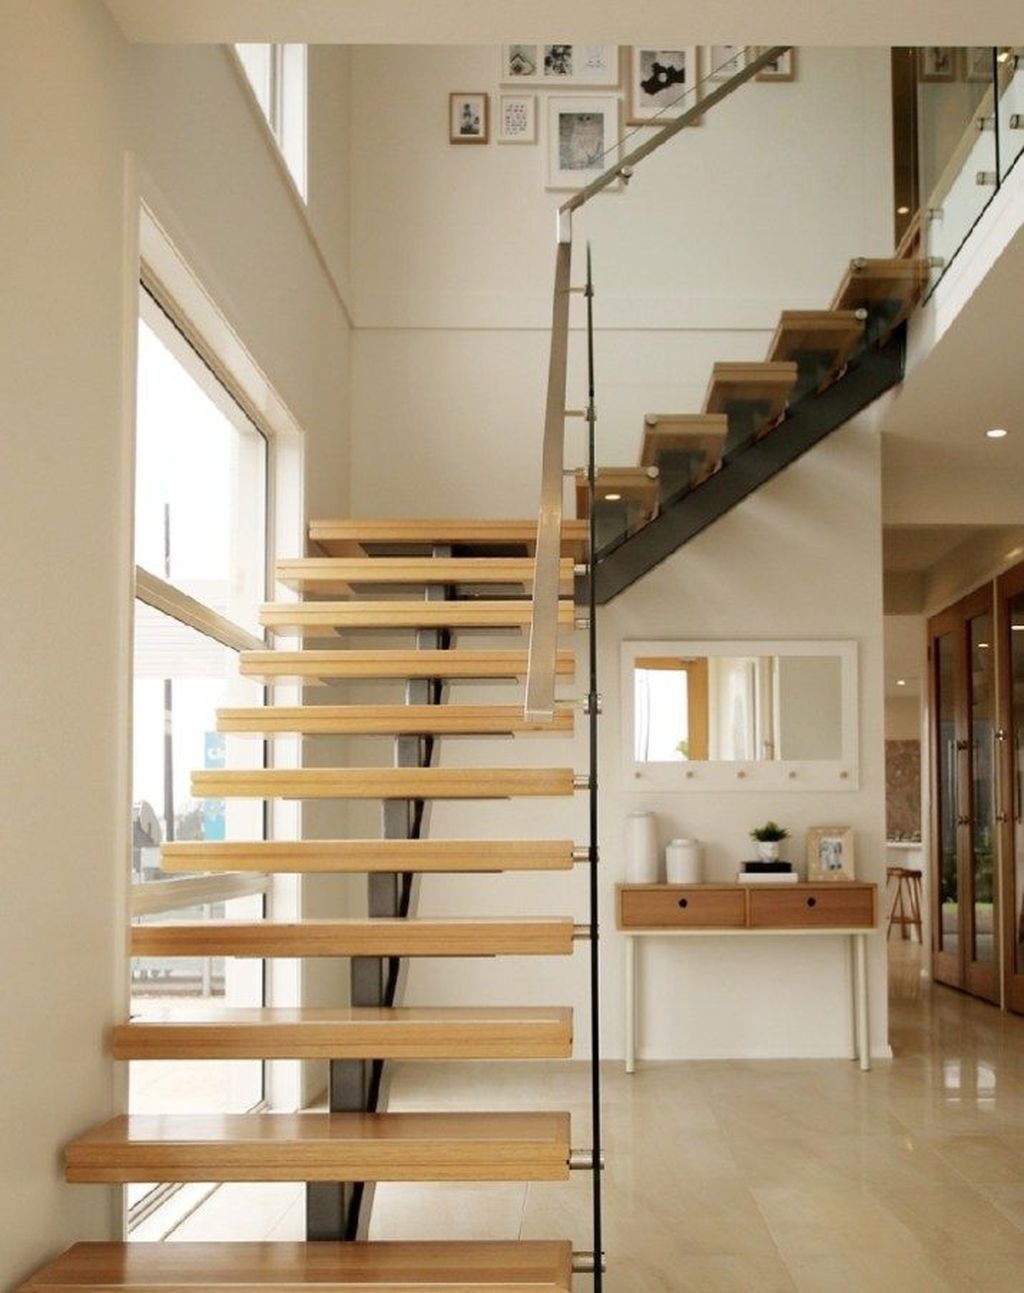 Stunning Wooden Stairs Design Ideas 13